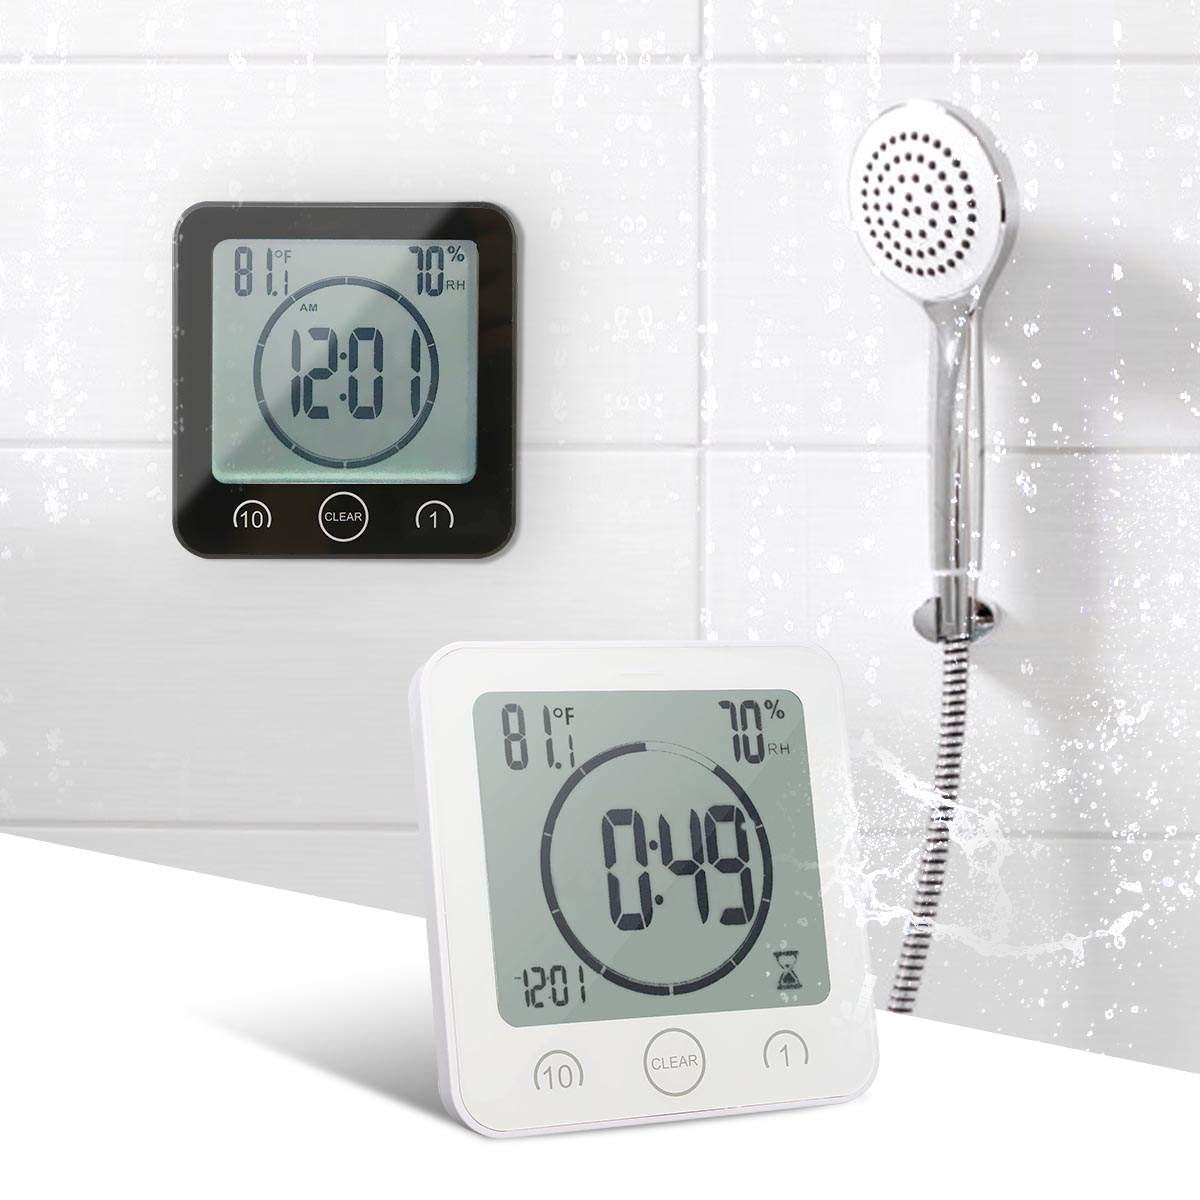 Waterproof LCD Digital Wall Clock Shower Suction Wall Stand Alarm Timer Temperature Humidity Bath Weather Station For Home(China)